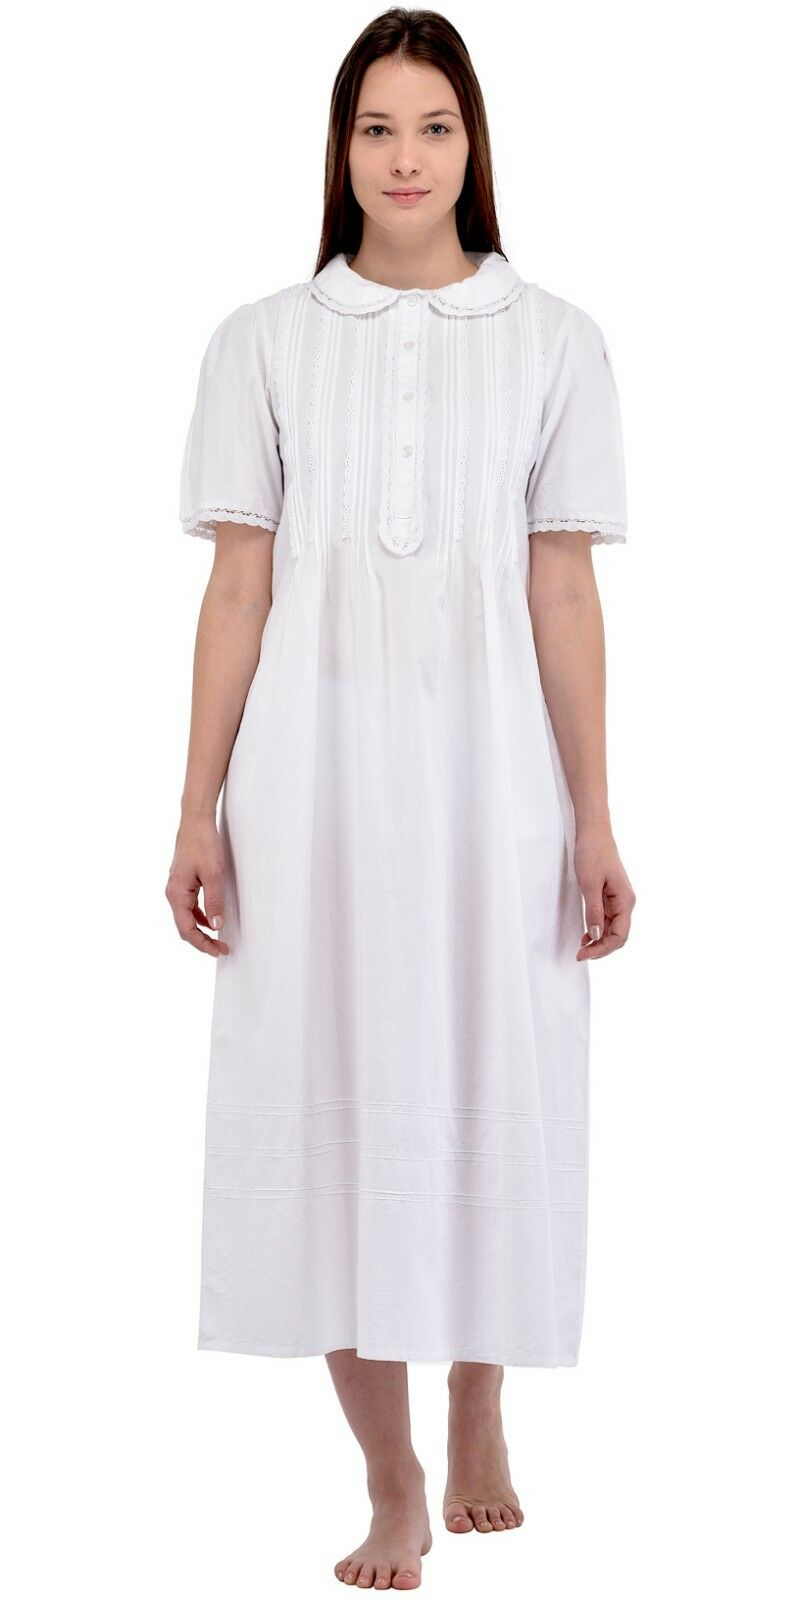 White Cotton Classic Peter Pan Collar Nightdress   Cotton Lane